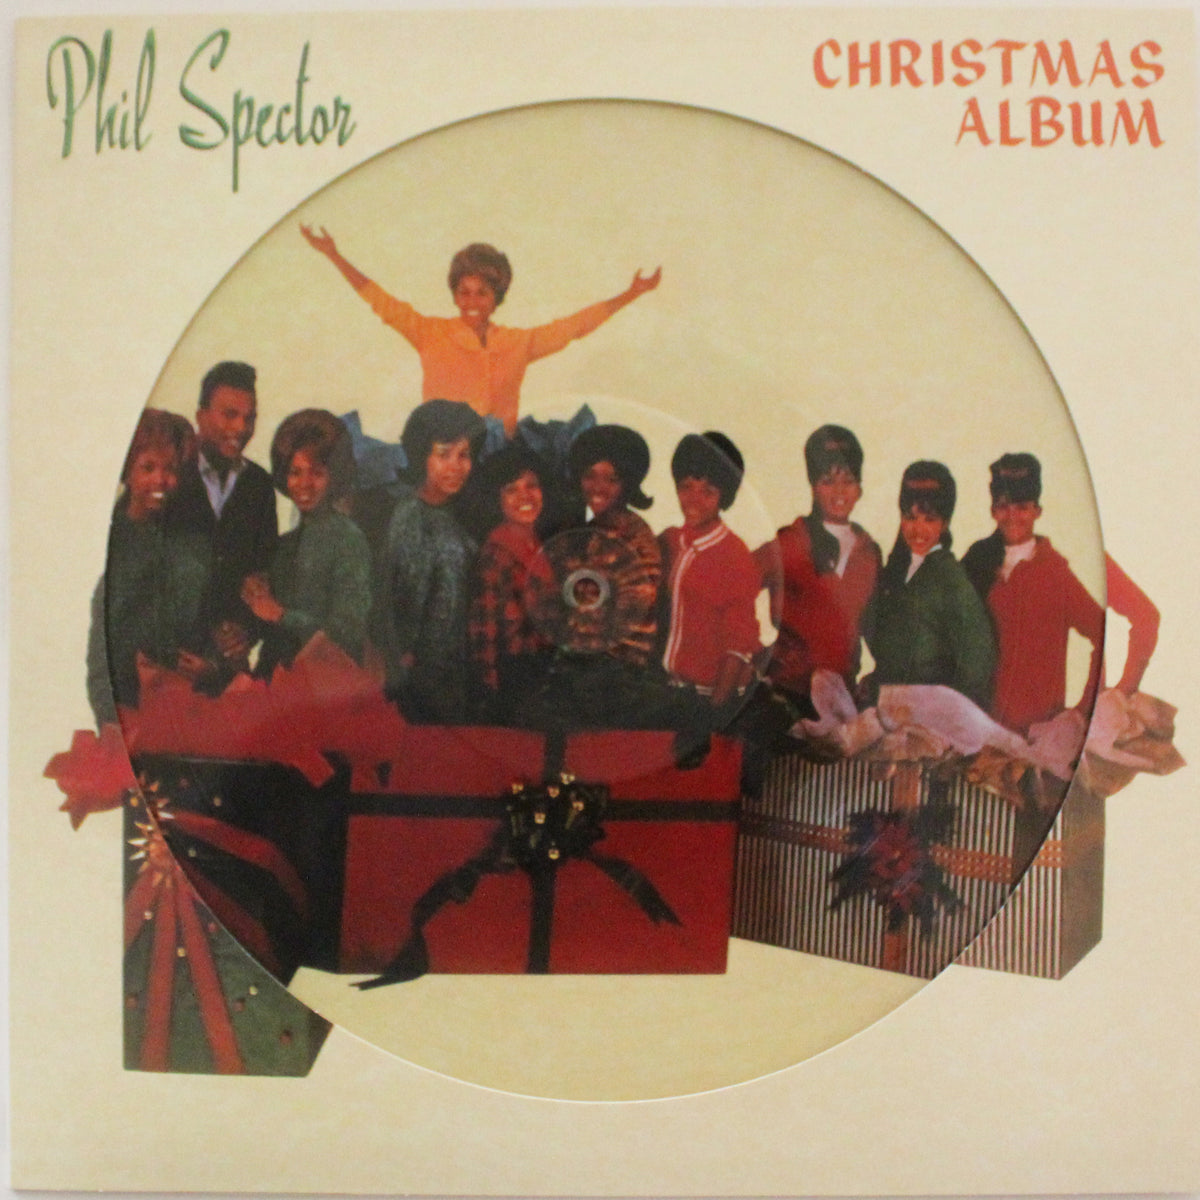 Phil Spector's Christmas Gift for You (picture vinyl)